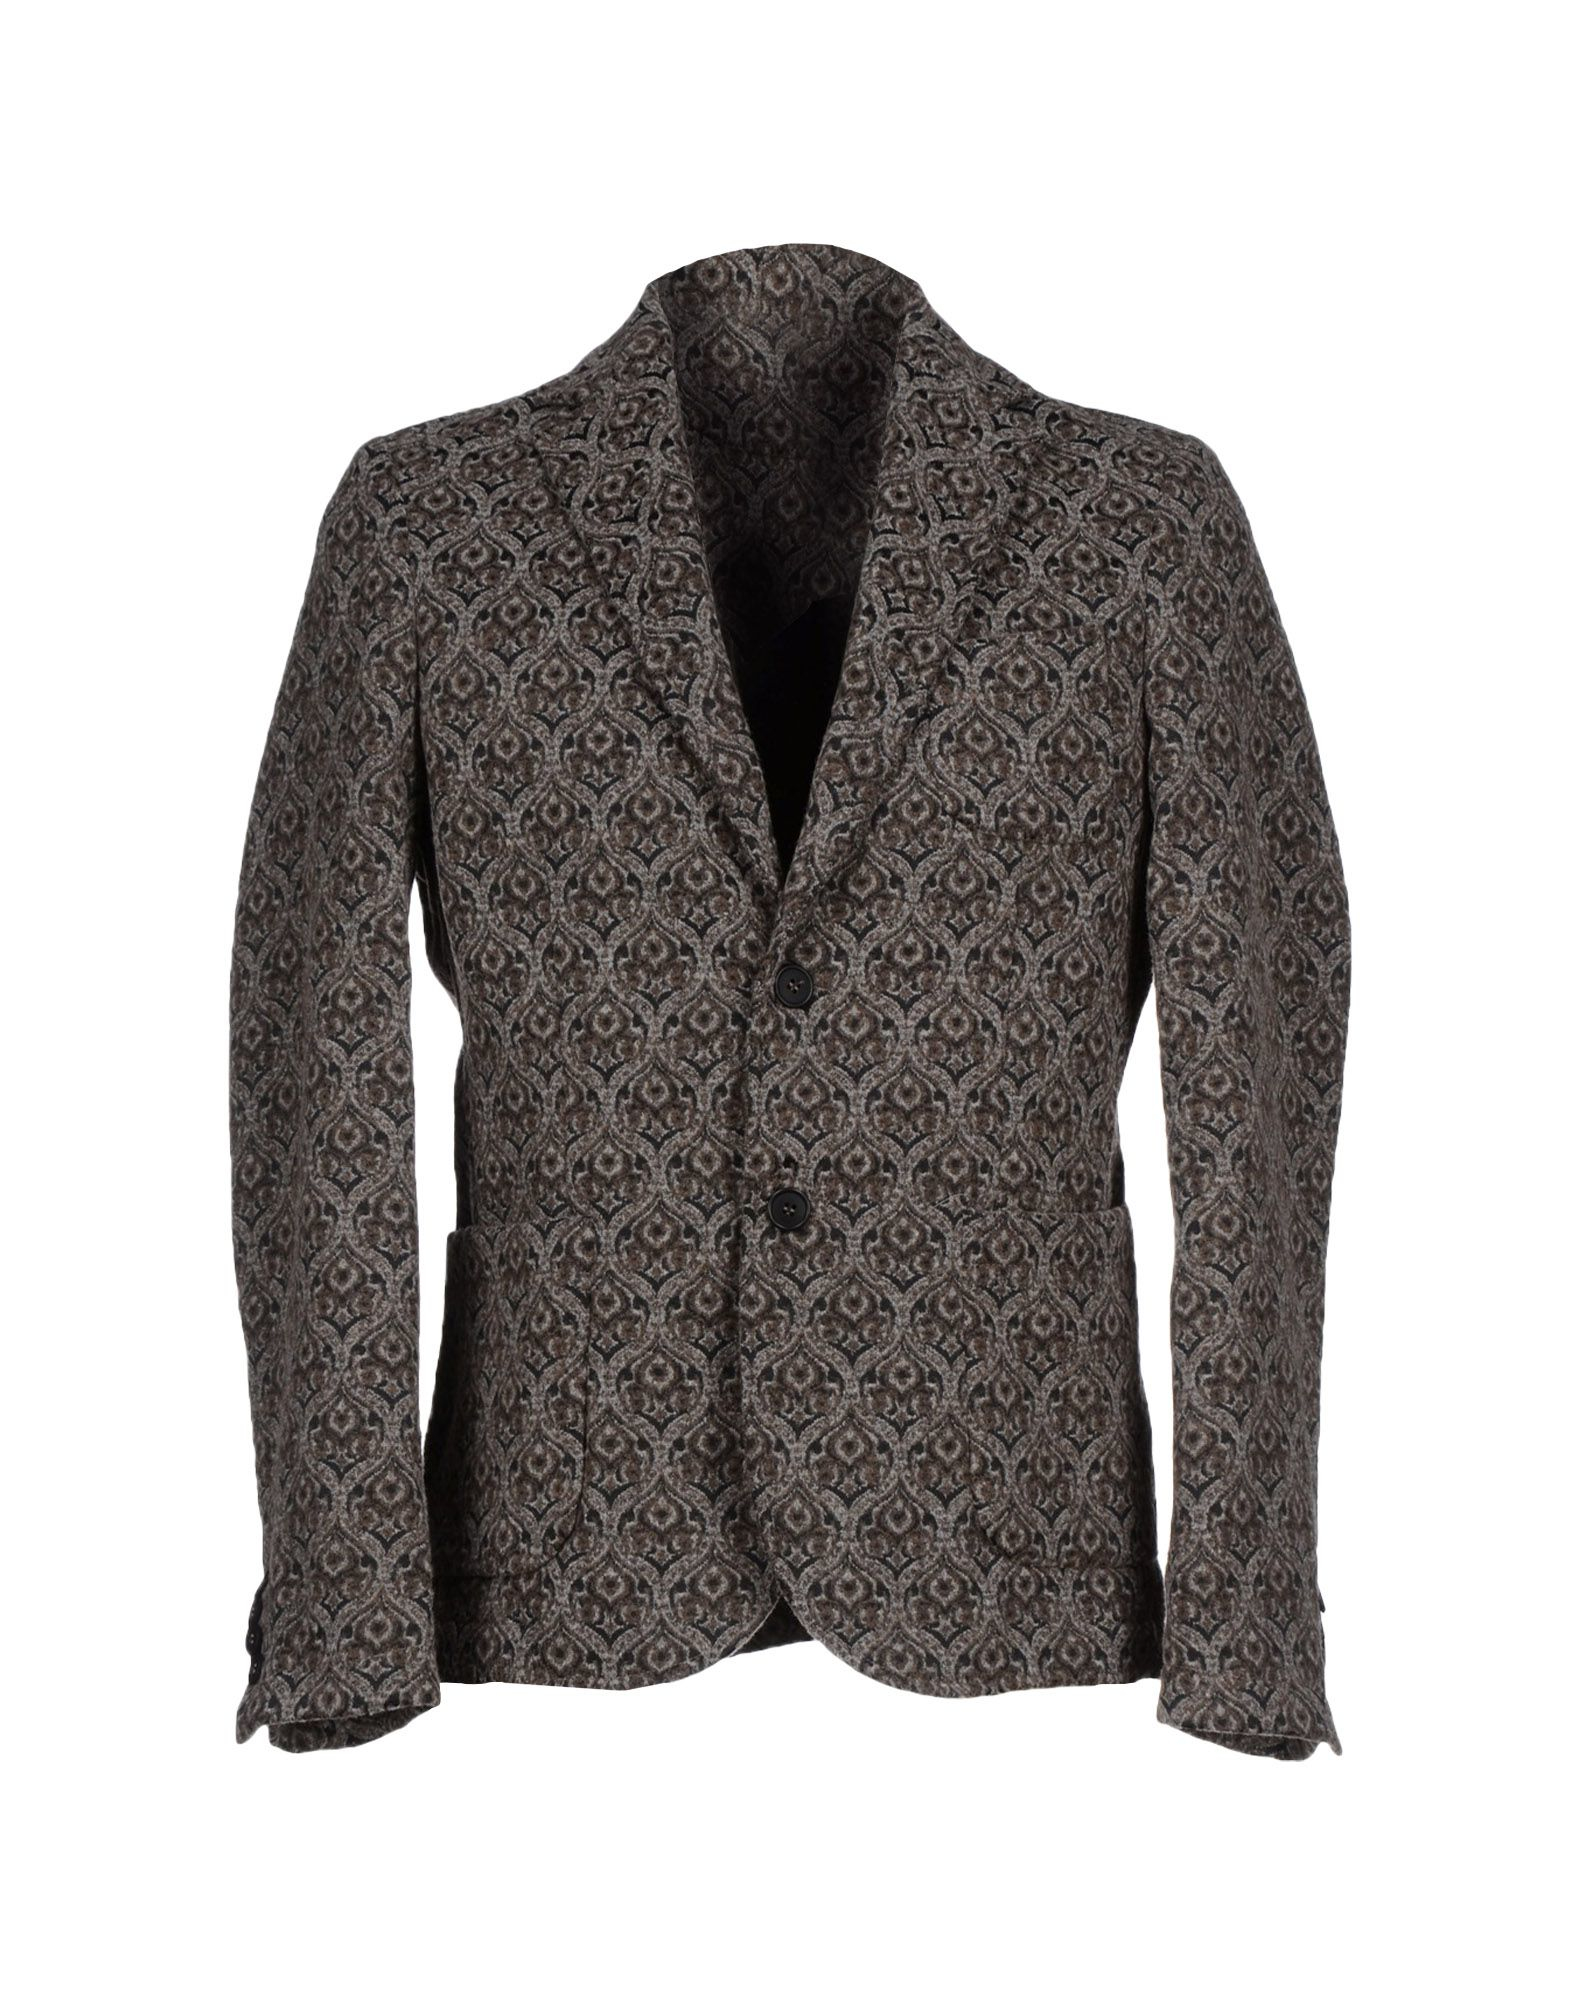 Find great deals on eBay for blazer 36s. Shop with confidence.